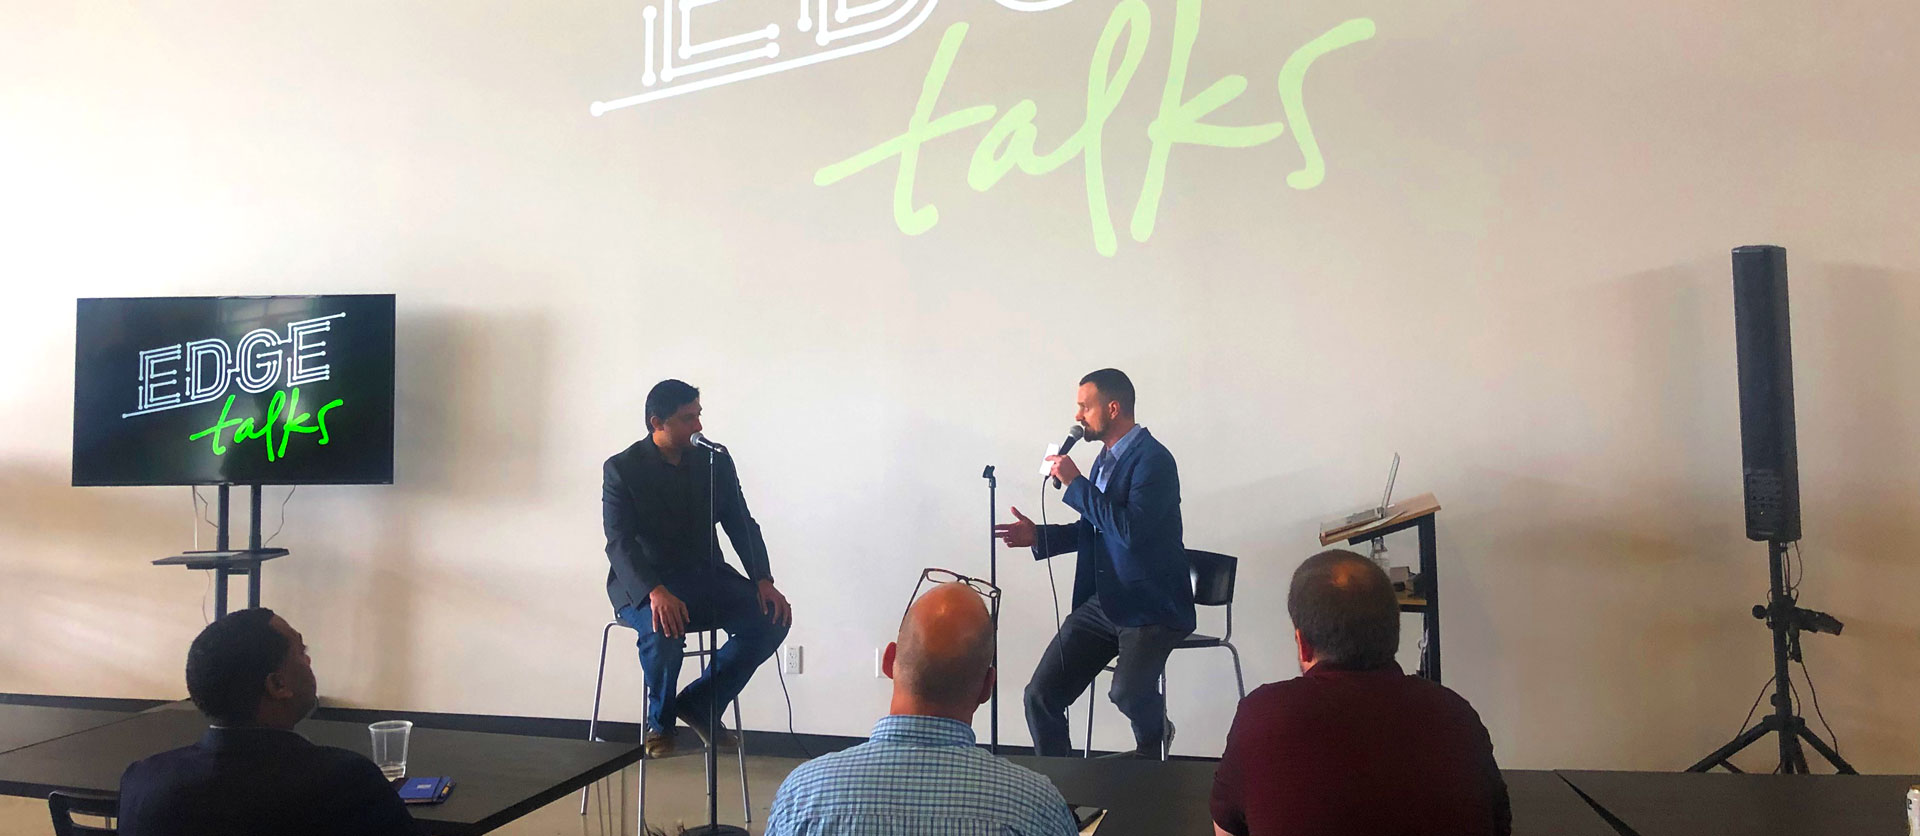 EDGE Talks. June 21, 2019.